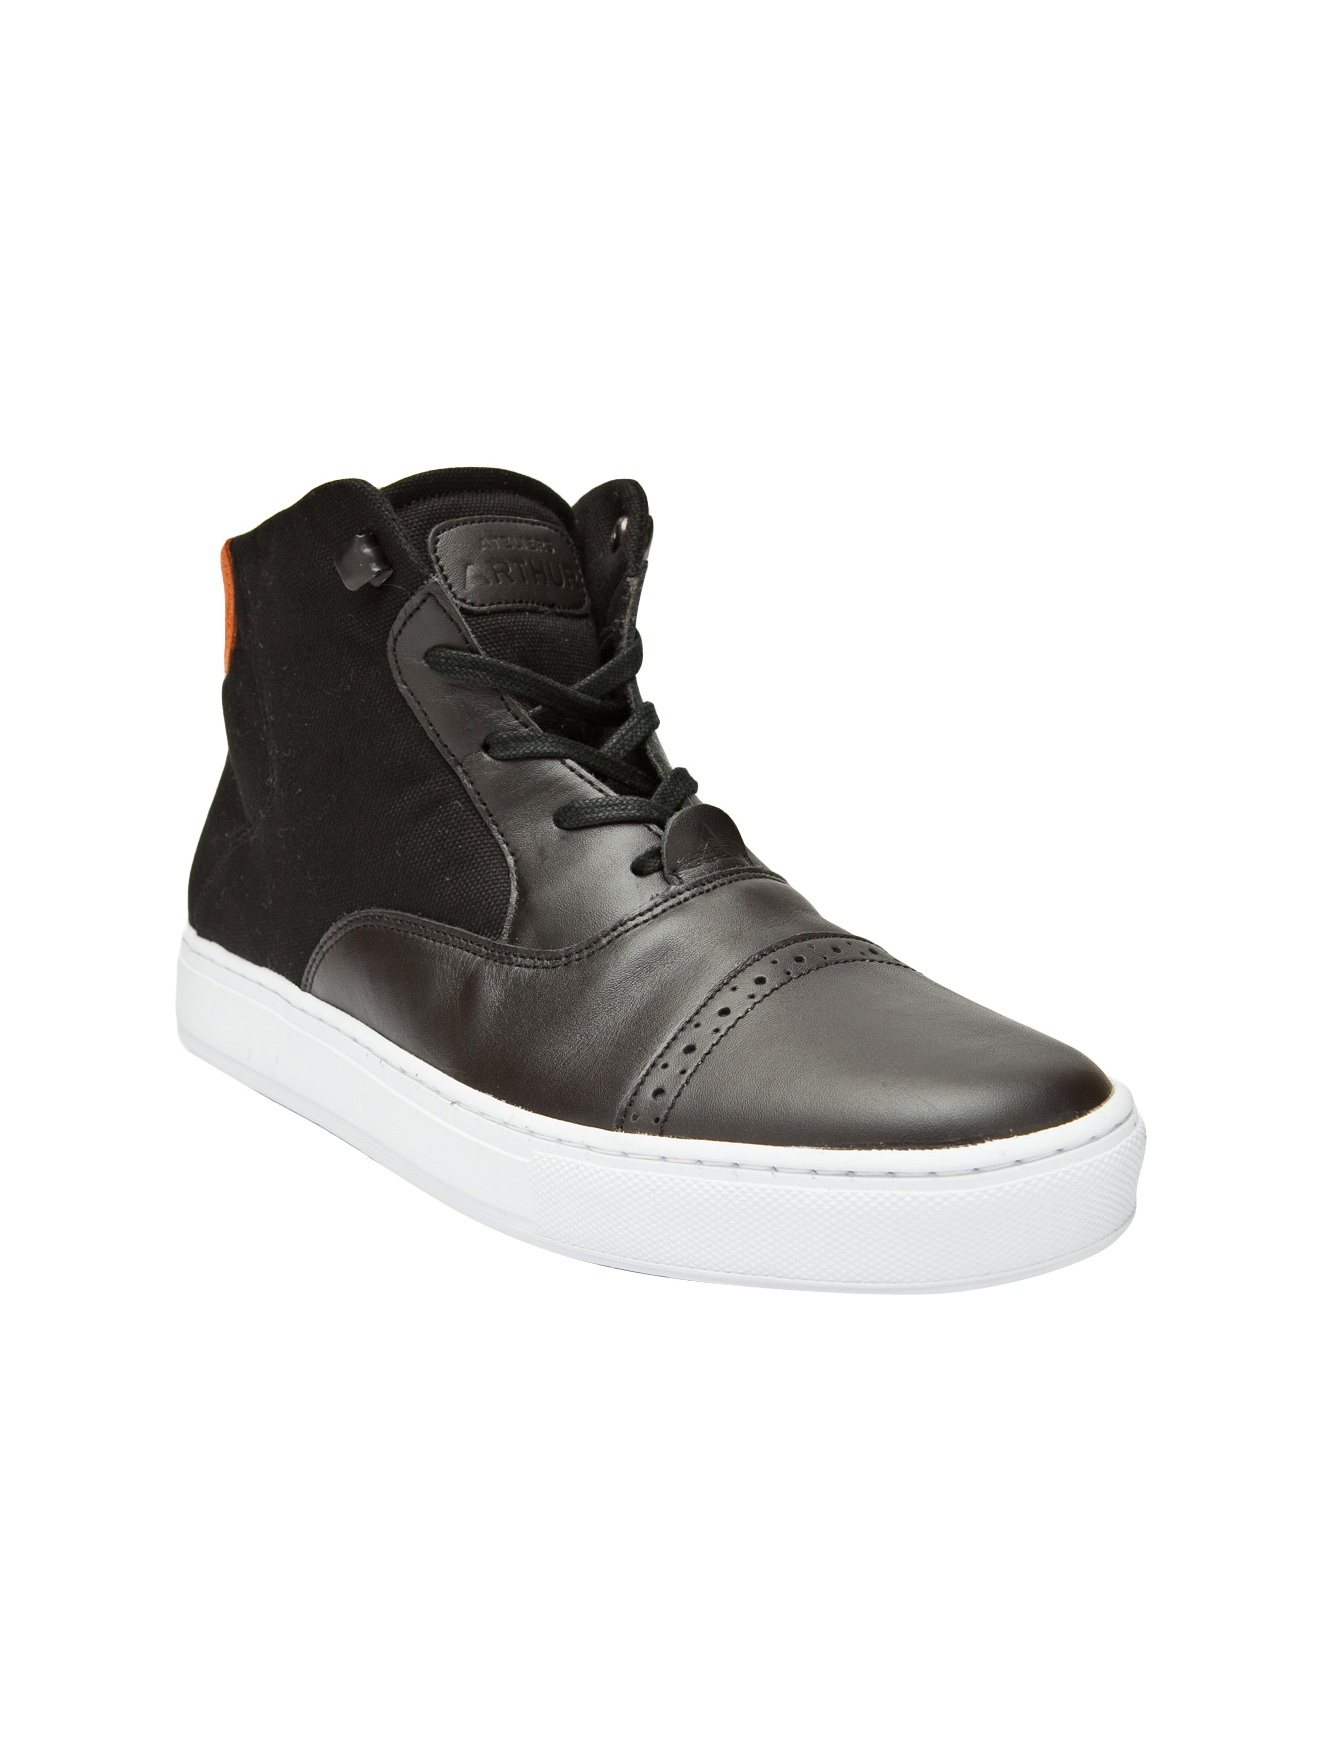 ateliers arthur mid top sneakers in black for lyst